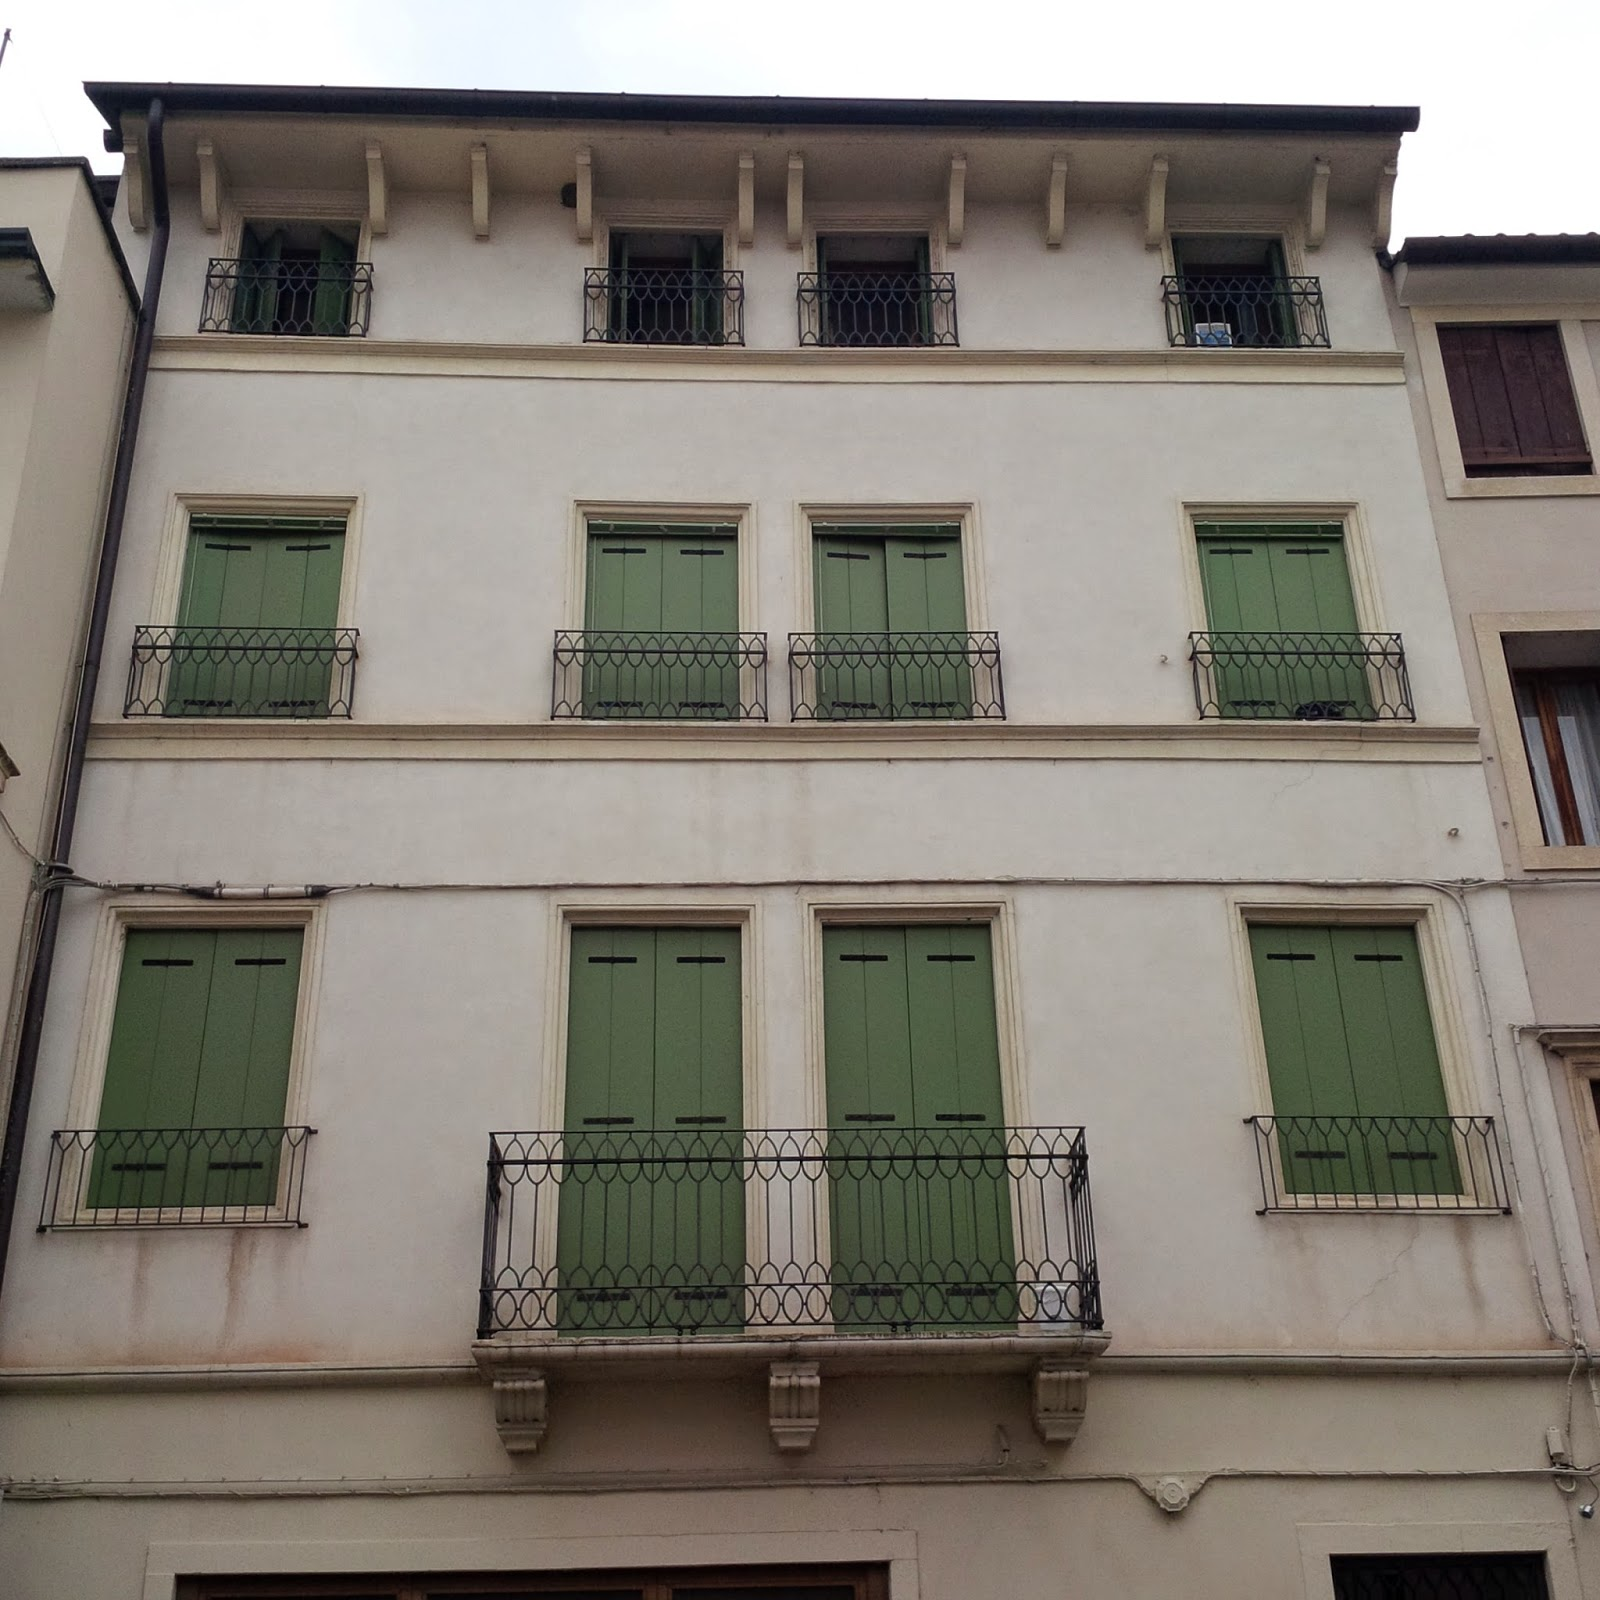 A building with closed shutters in Vicenza